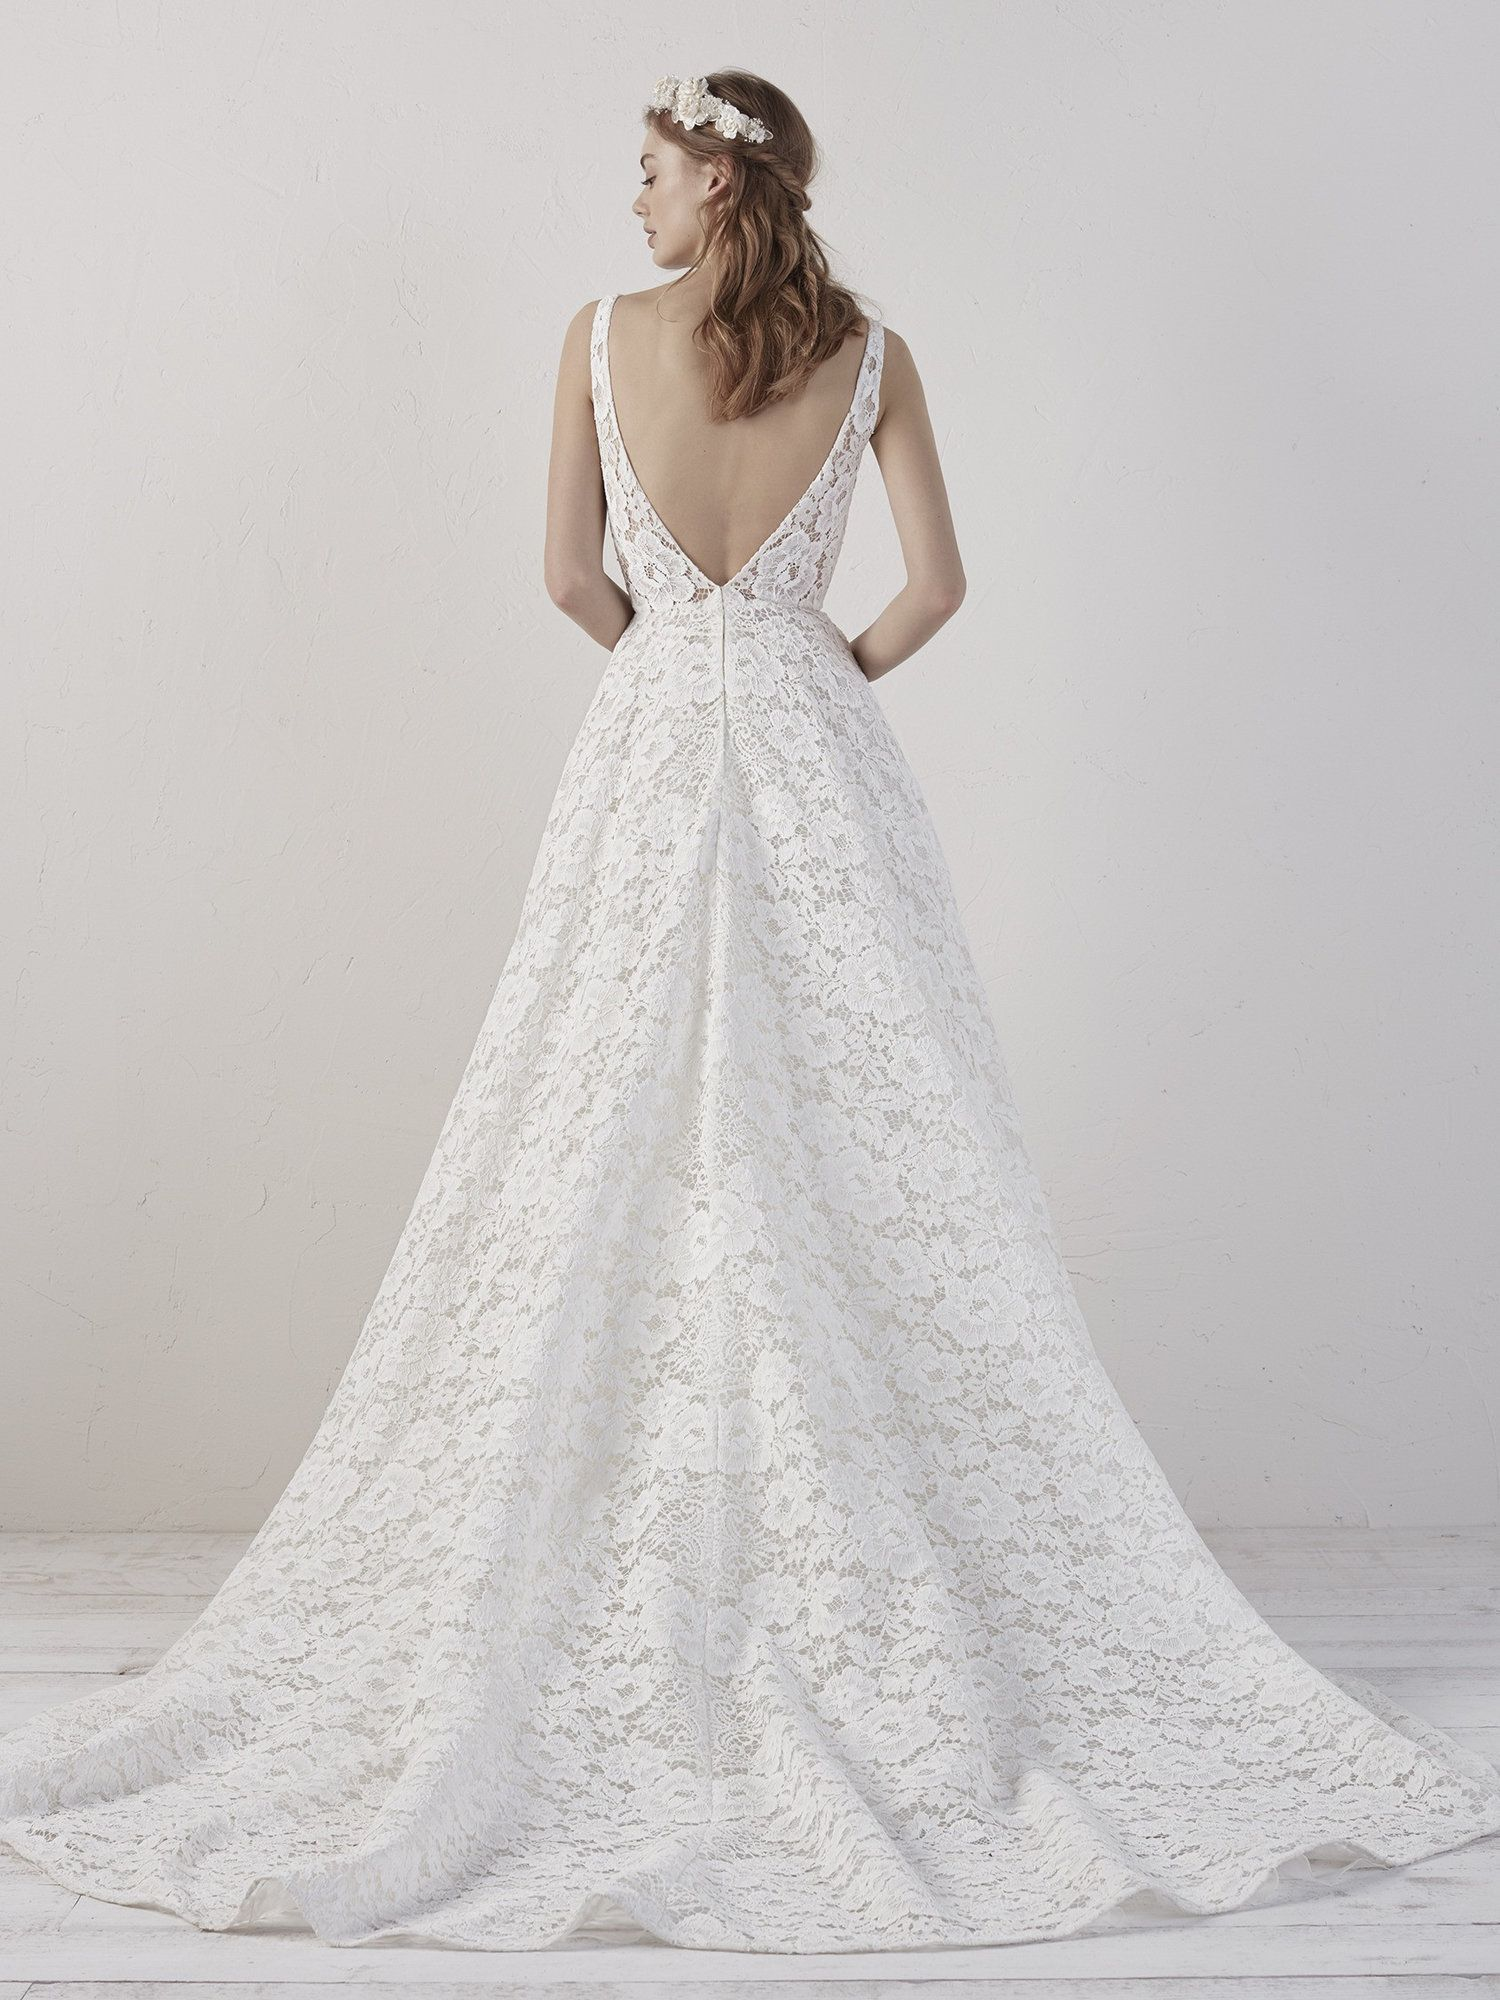 Pronovias Indianapolis In Bridal Store Wedding Dresses Marie Gabriel Couture Wedding Dress With Pockets Pronovias Wedding Dress Designer Bridal Gowns